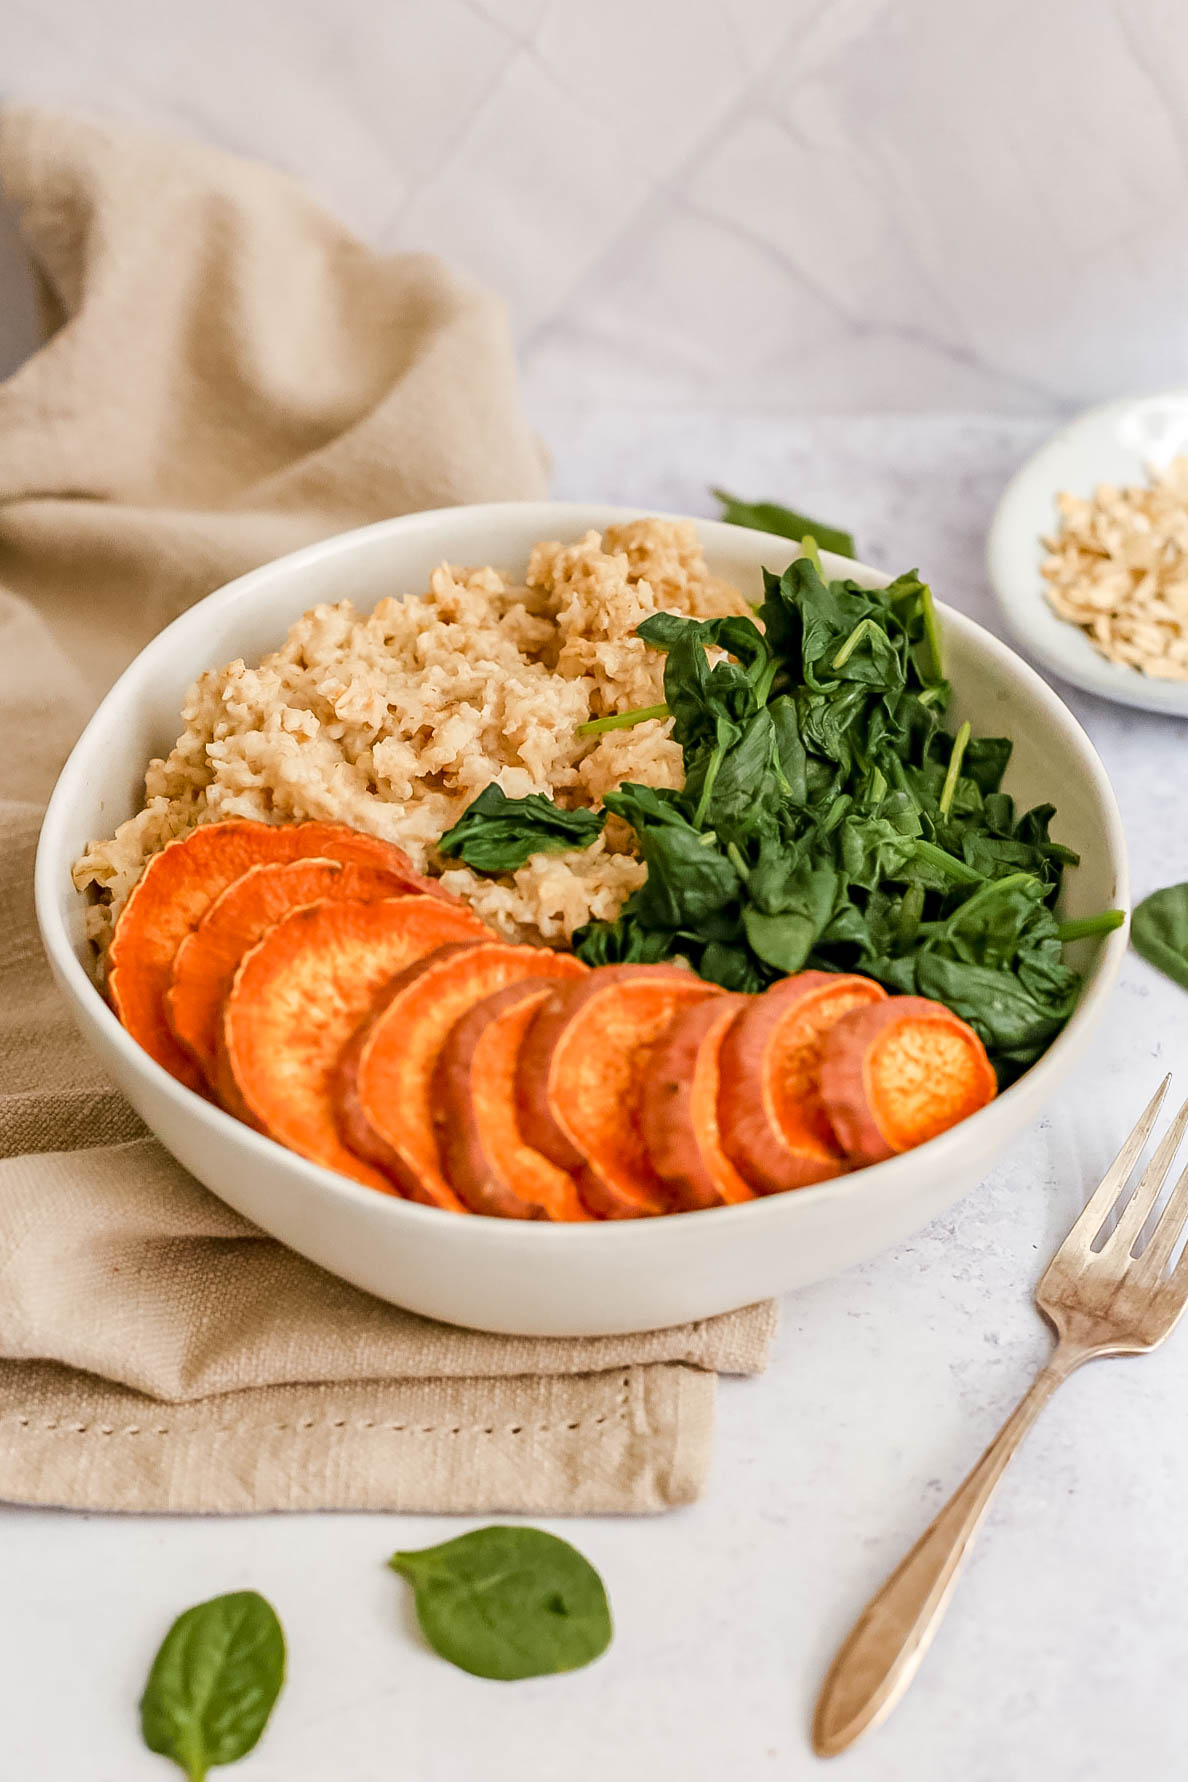 Savory Spinach Breakfast Bowl